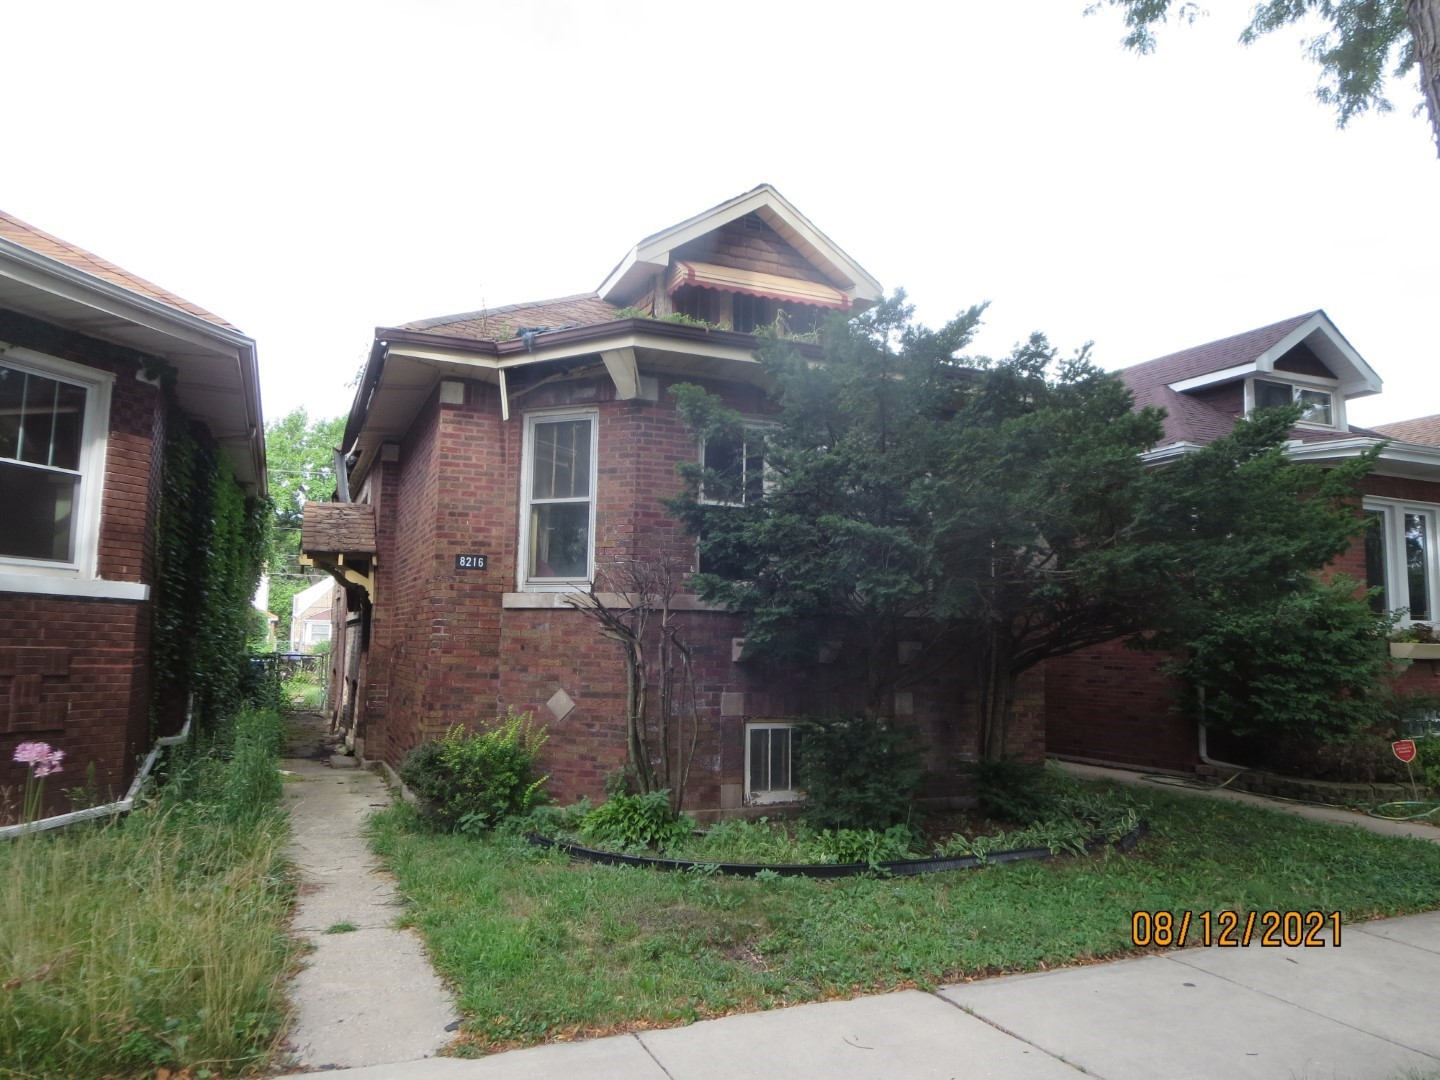 TOTAL REHAB NEEDED TO RESTORE THIS BEAUTIFUL BRICK BUNGALOW.  AS-IS SALE, NOT BANK OWNED.  THIS HOME HAS A LOT OF POTENTIAL BUT CONDITION IS VERY POOR.  PLEASE NOTE: 0% TAX PRORATIONS ARE OFFERED, THE SELLER WILL PAY CURRENT AND ALL PRIOR TAX BUT 0% CREDIT FOR FUTURE BILLS.  SPECIAL WARRANTY DEED AT CLOSING. NO SURVEY.  FOR FASTER RESPONSE PLEASE USE SELLERS CONTRACT, ADDENDUM AND DISCLOSURES UNDER DOCUMENTS.